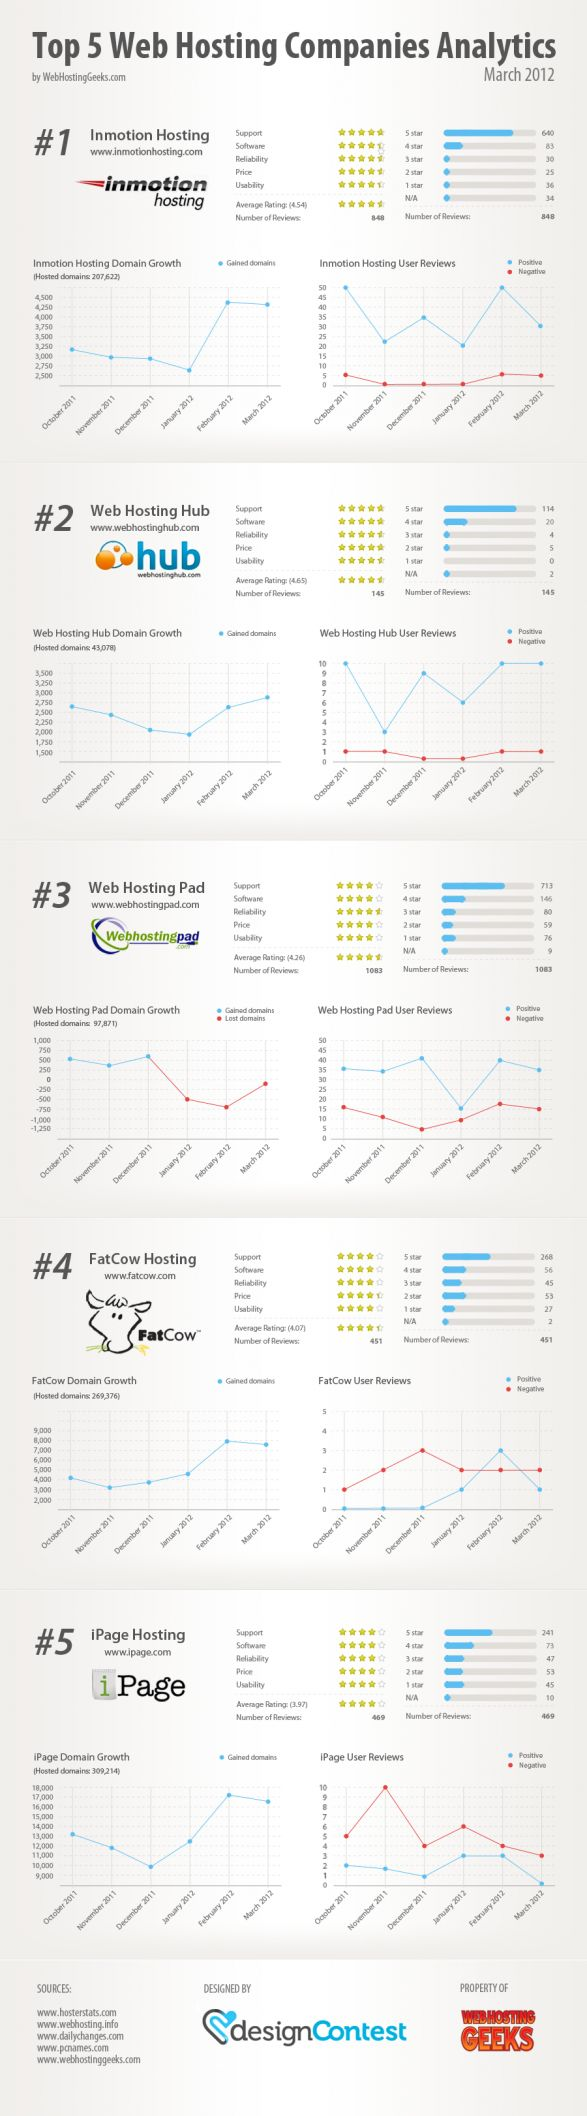 Top 5 web hosting companies analytics by webhostinggeeks